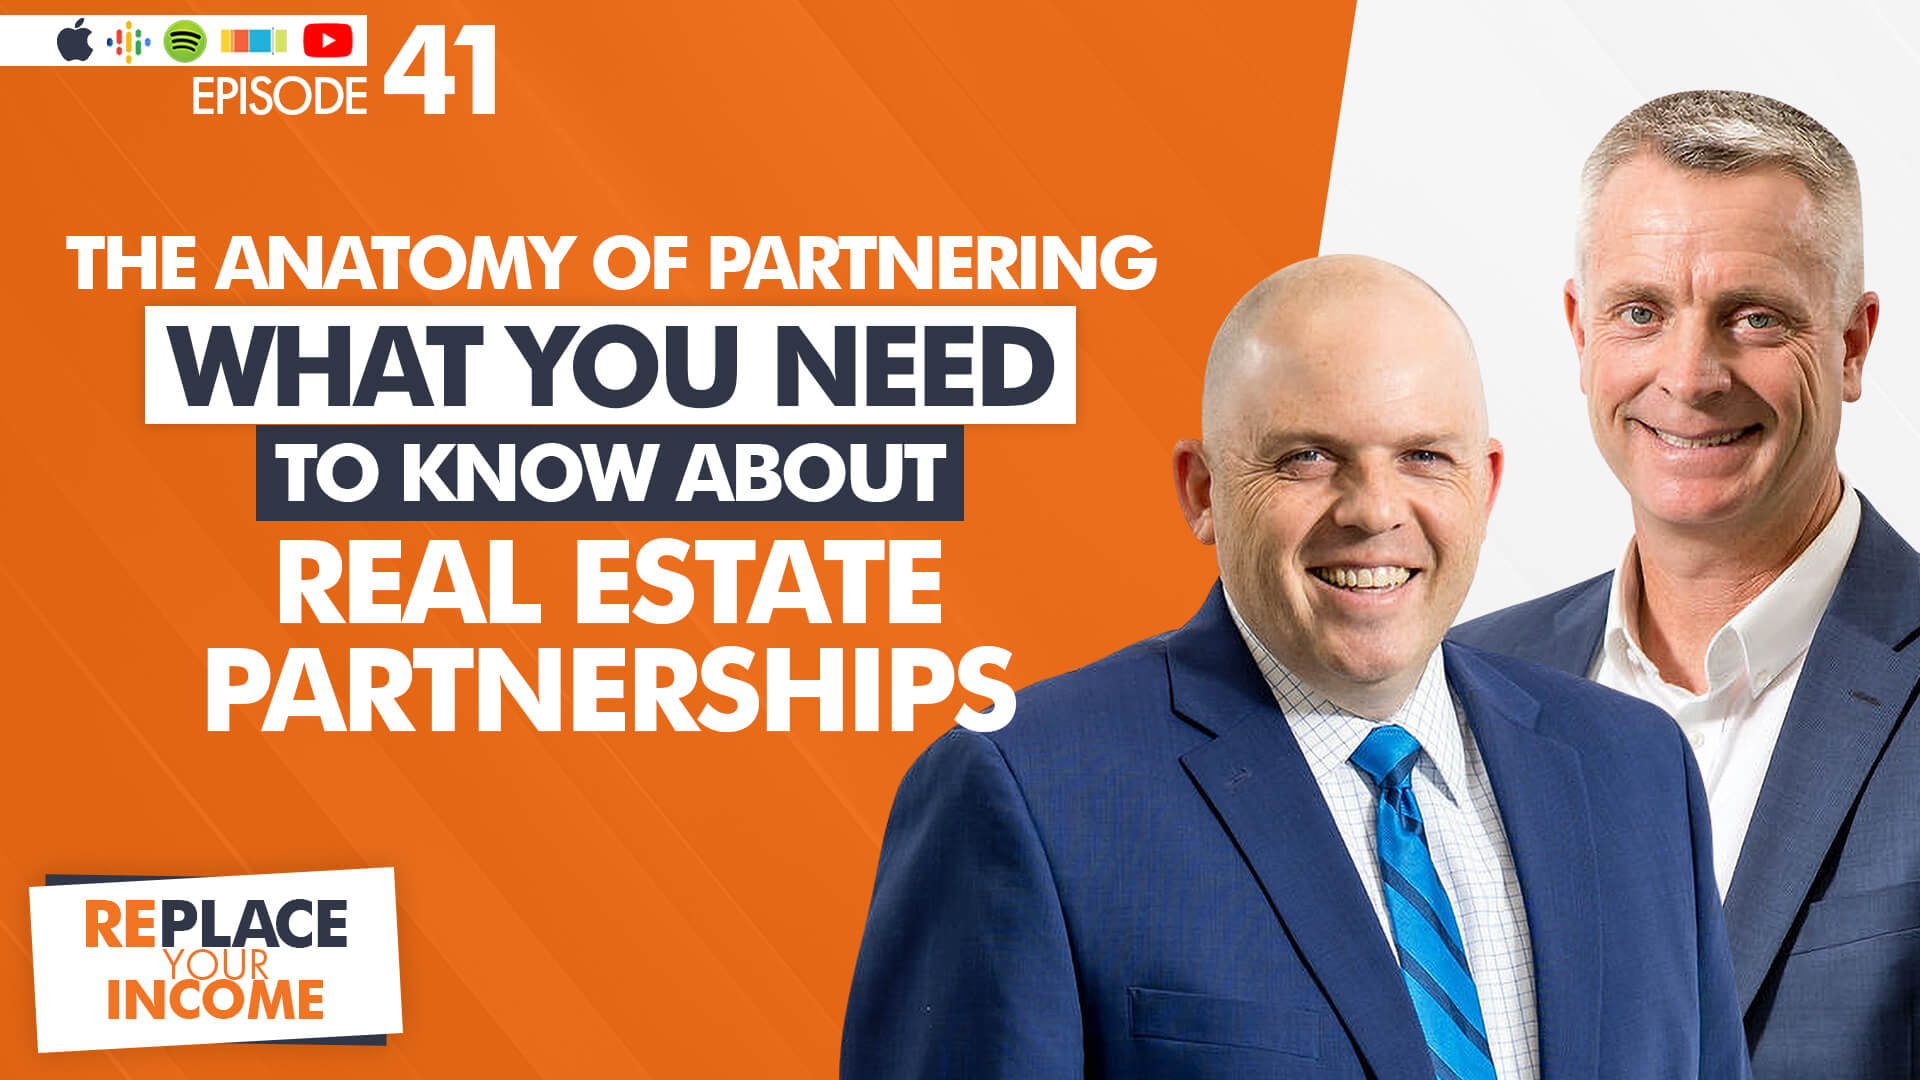 real estate partnerships done for you dfy kevin clayson steve earl